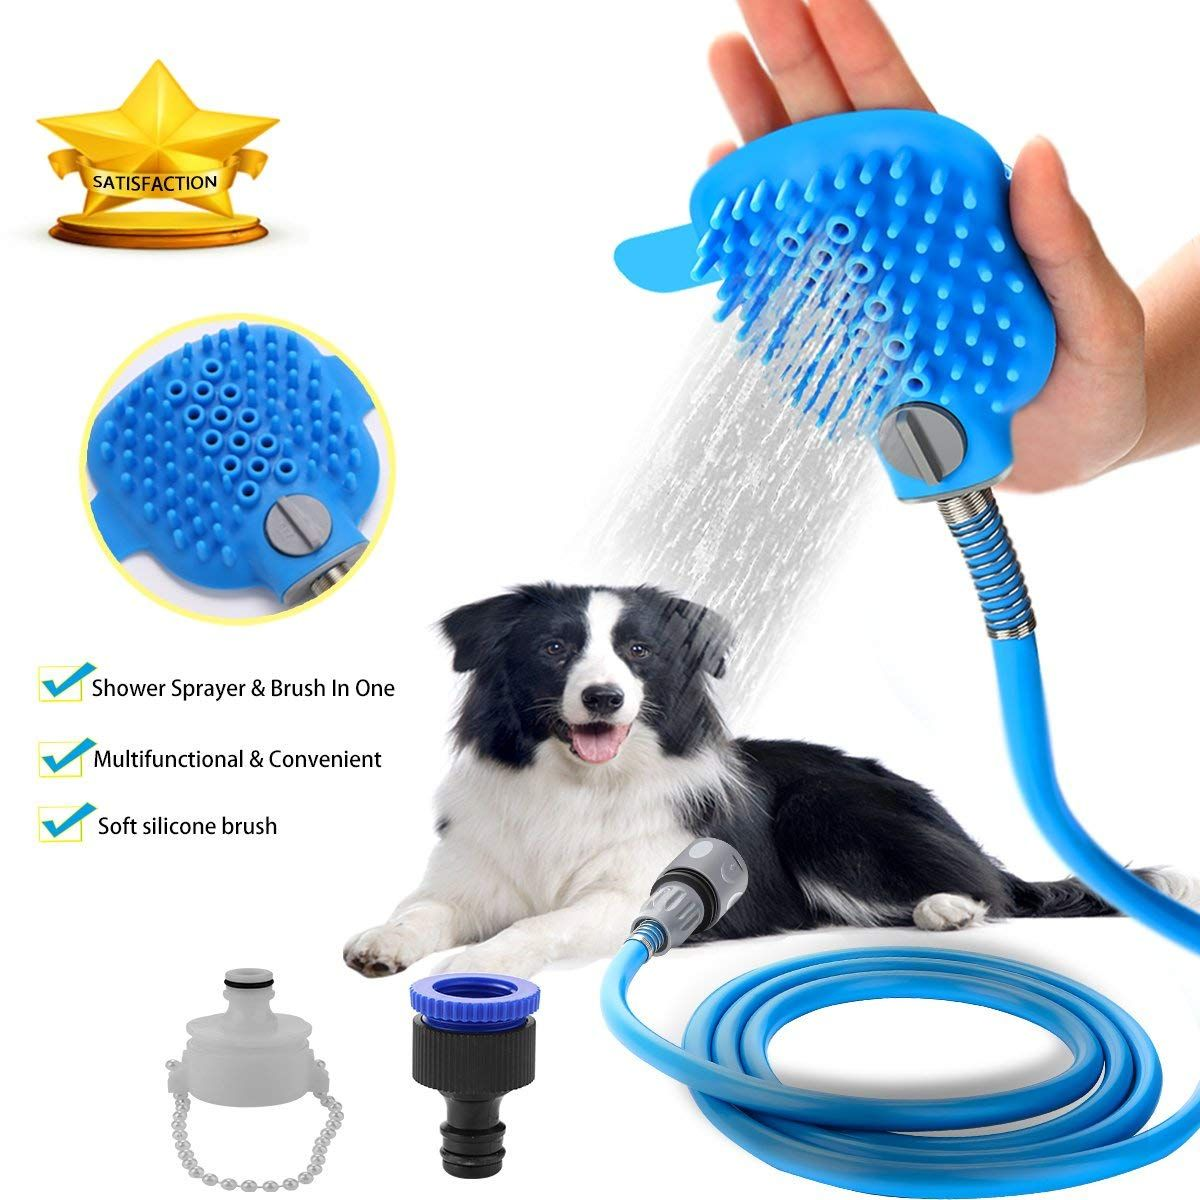 Pet Shower Sprayer Dog Bathing Tool Shower Head And Brush In One